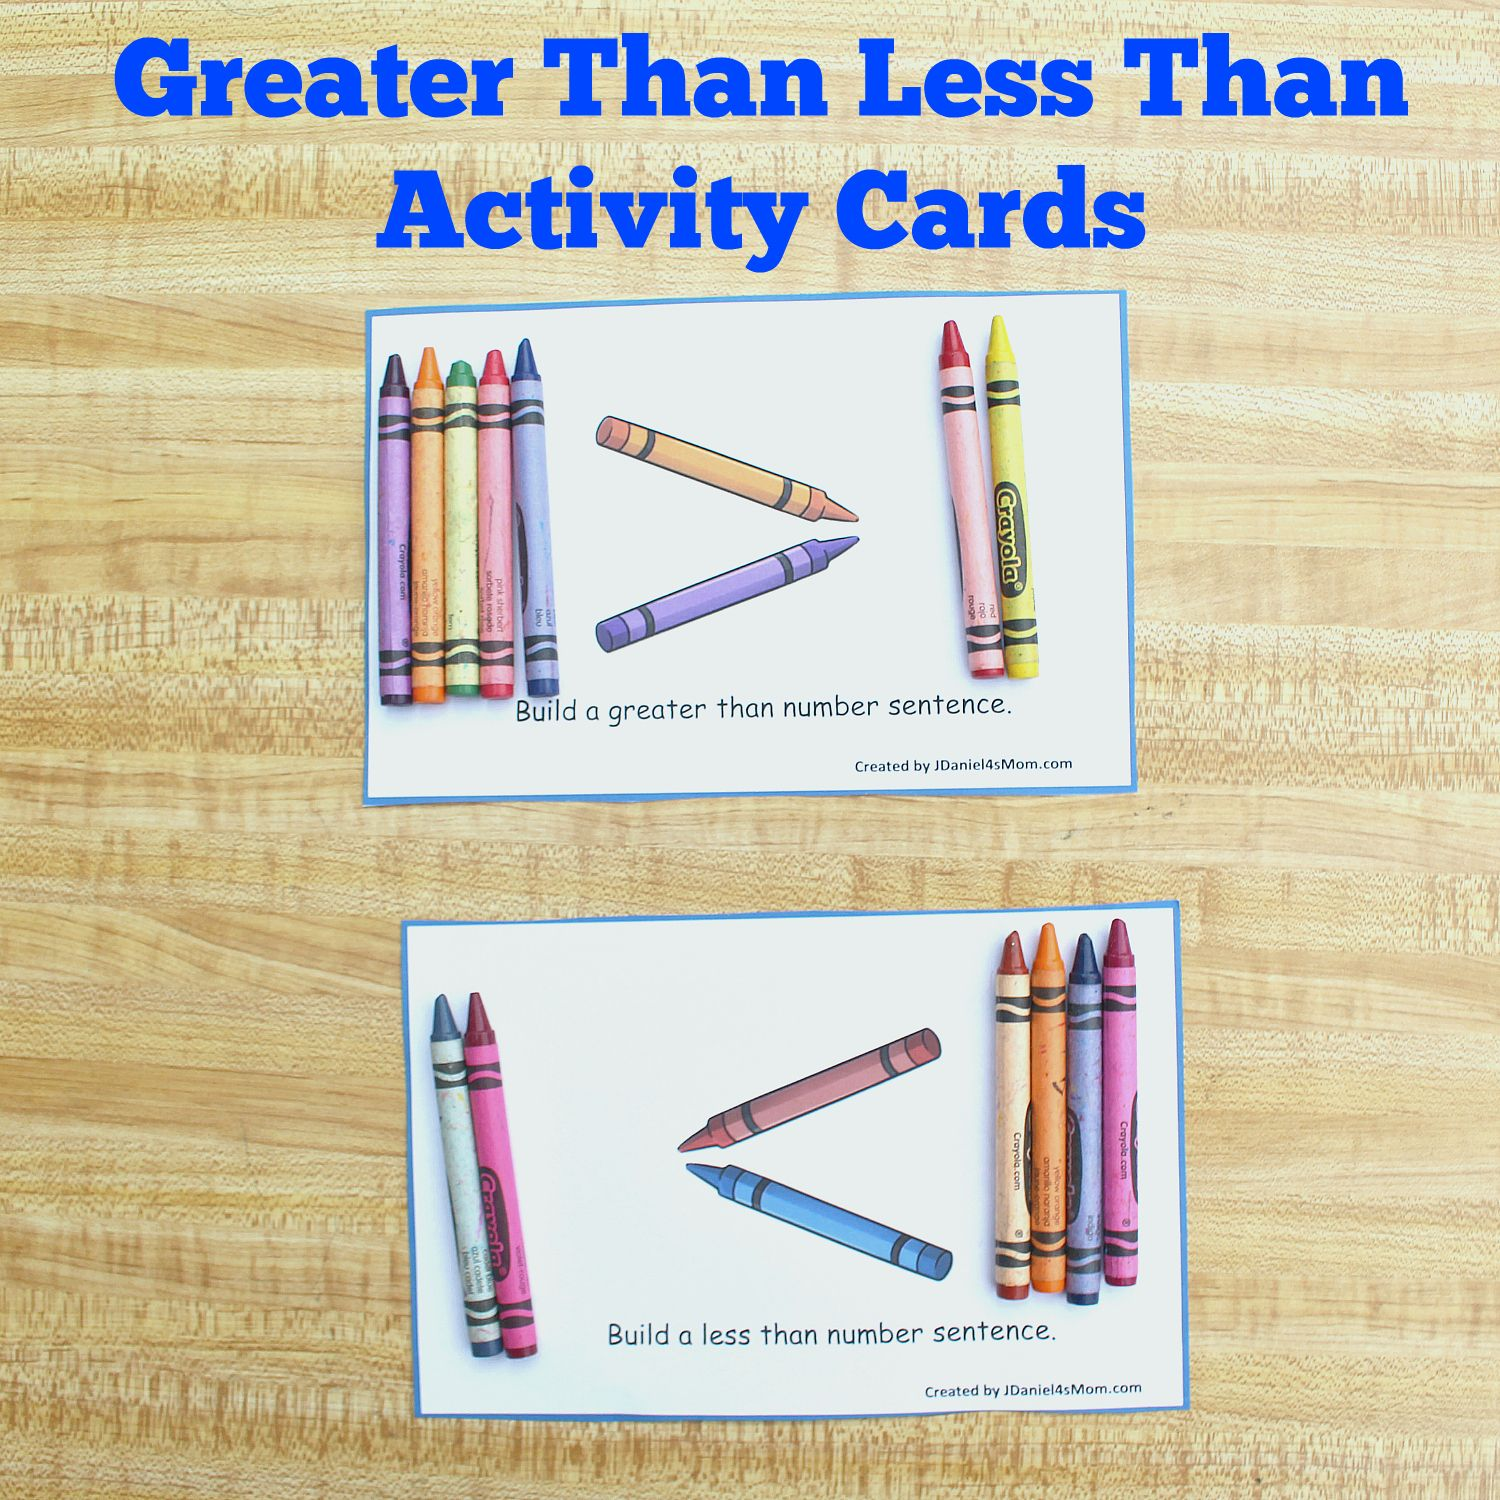 Greater Than Less Than Activity Cards